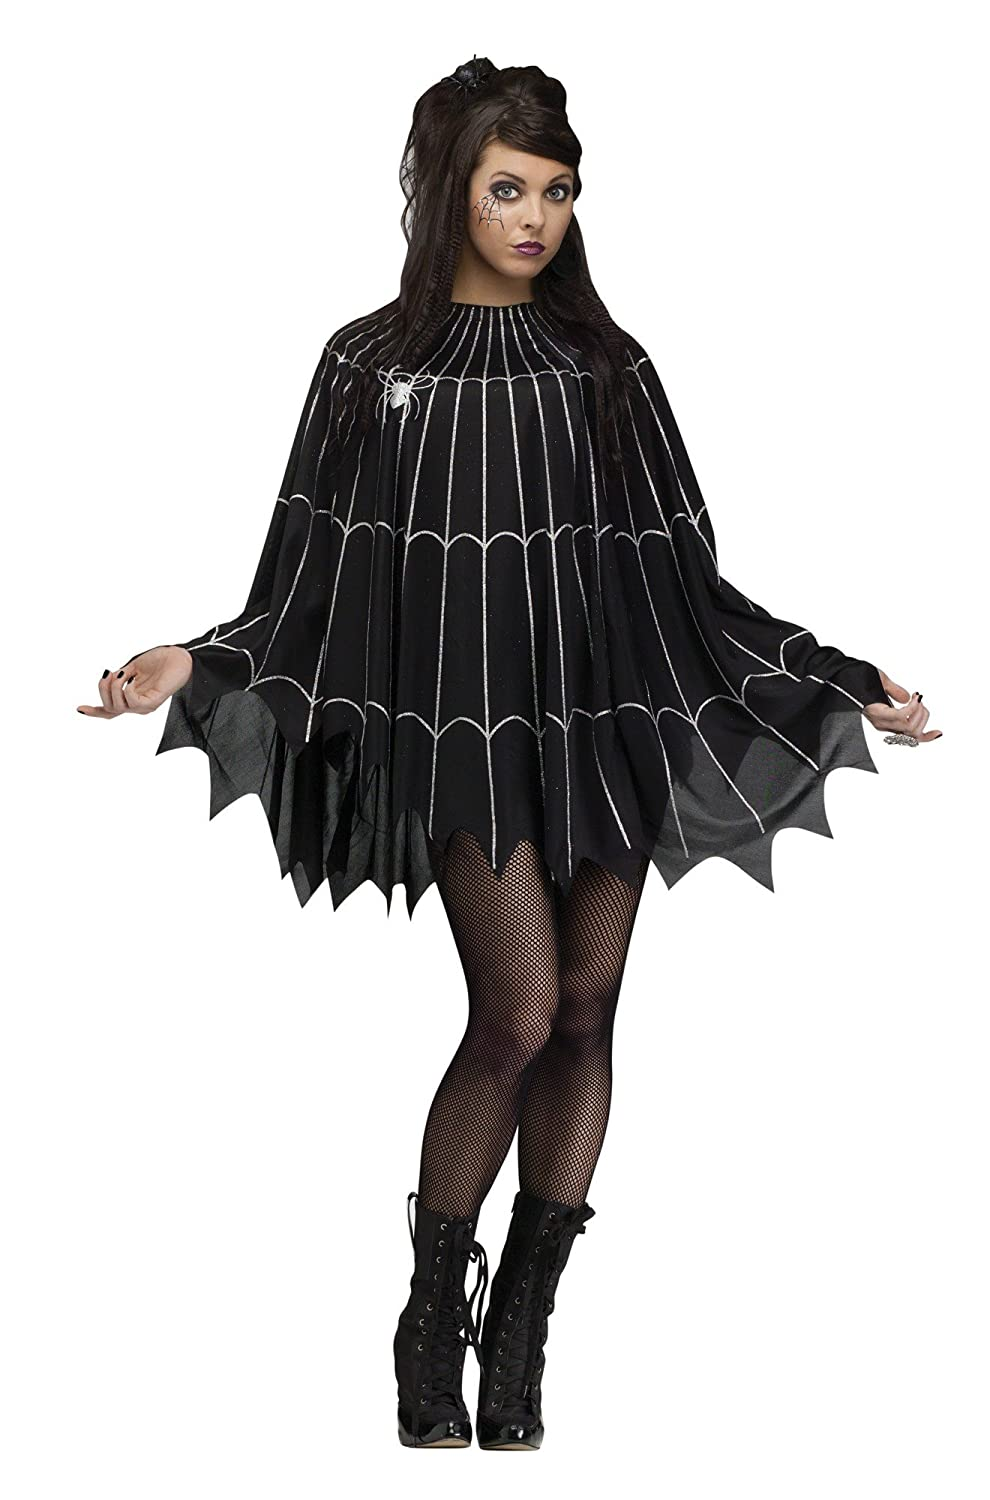 1930s Costumes- Bride of Frankenstein, Betty Boop, Olive Oyl, Bonnie & Clyde Spider Web Poncho Adult Costume $15.08 AT vintagedancer.com